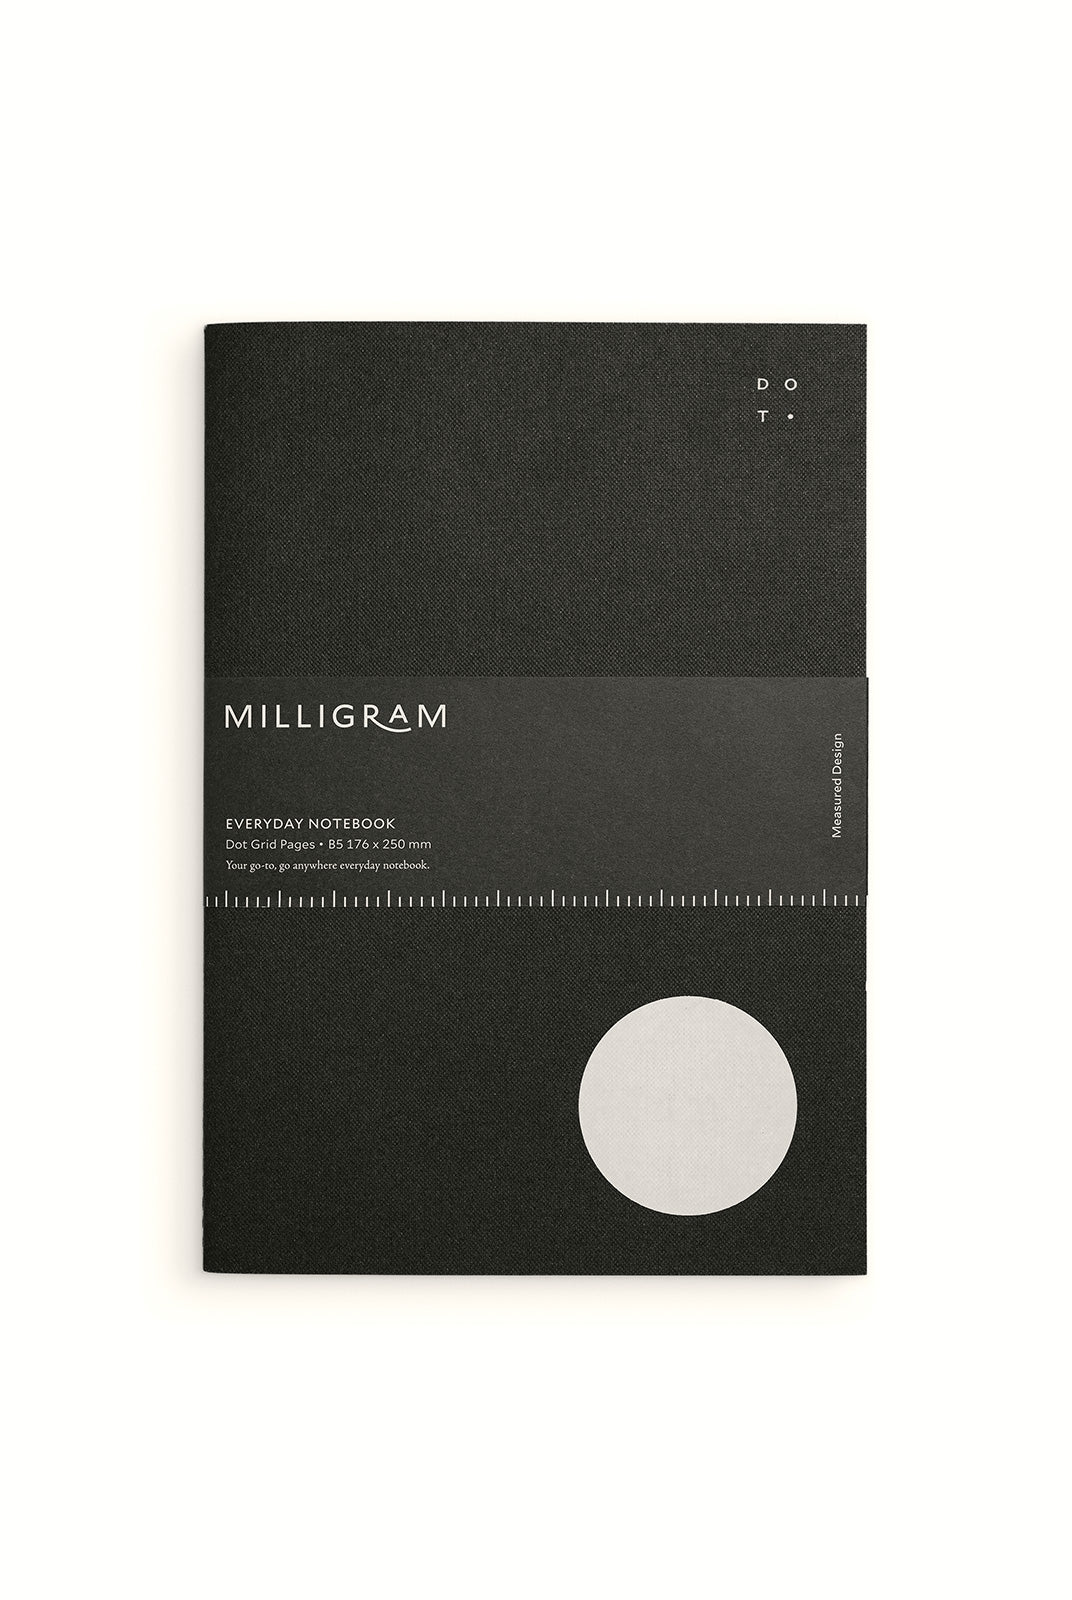 Studio Milligram - Everyday Notebook - Dot Grid - B5 - Black